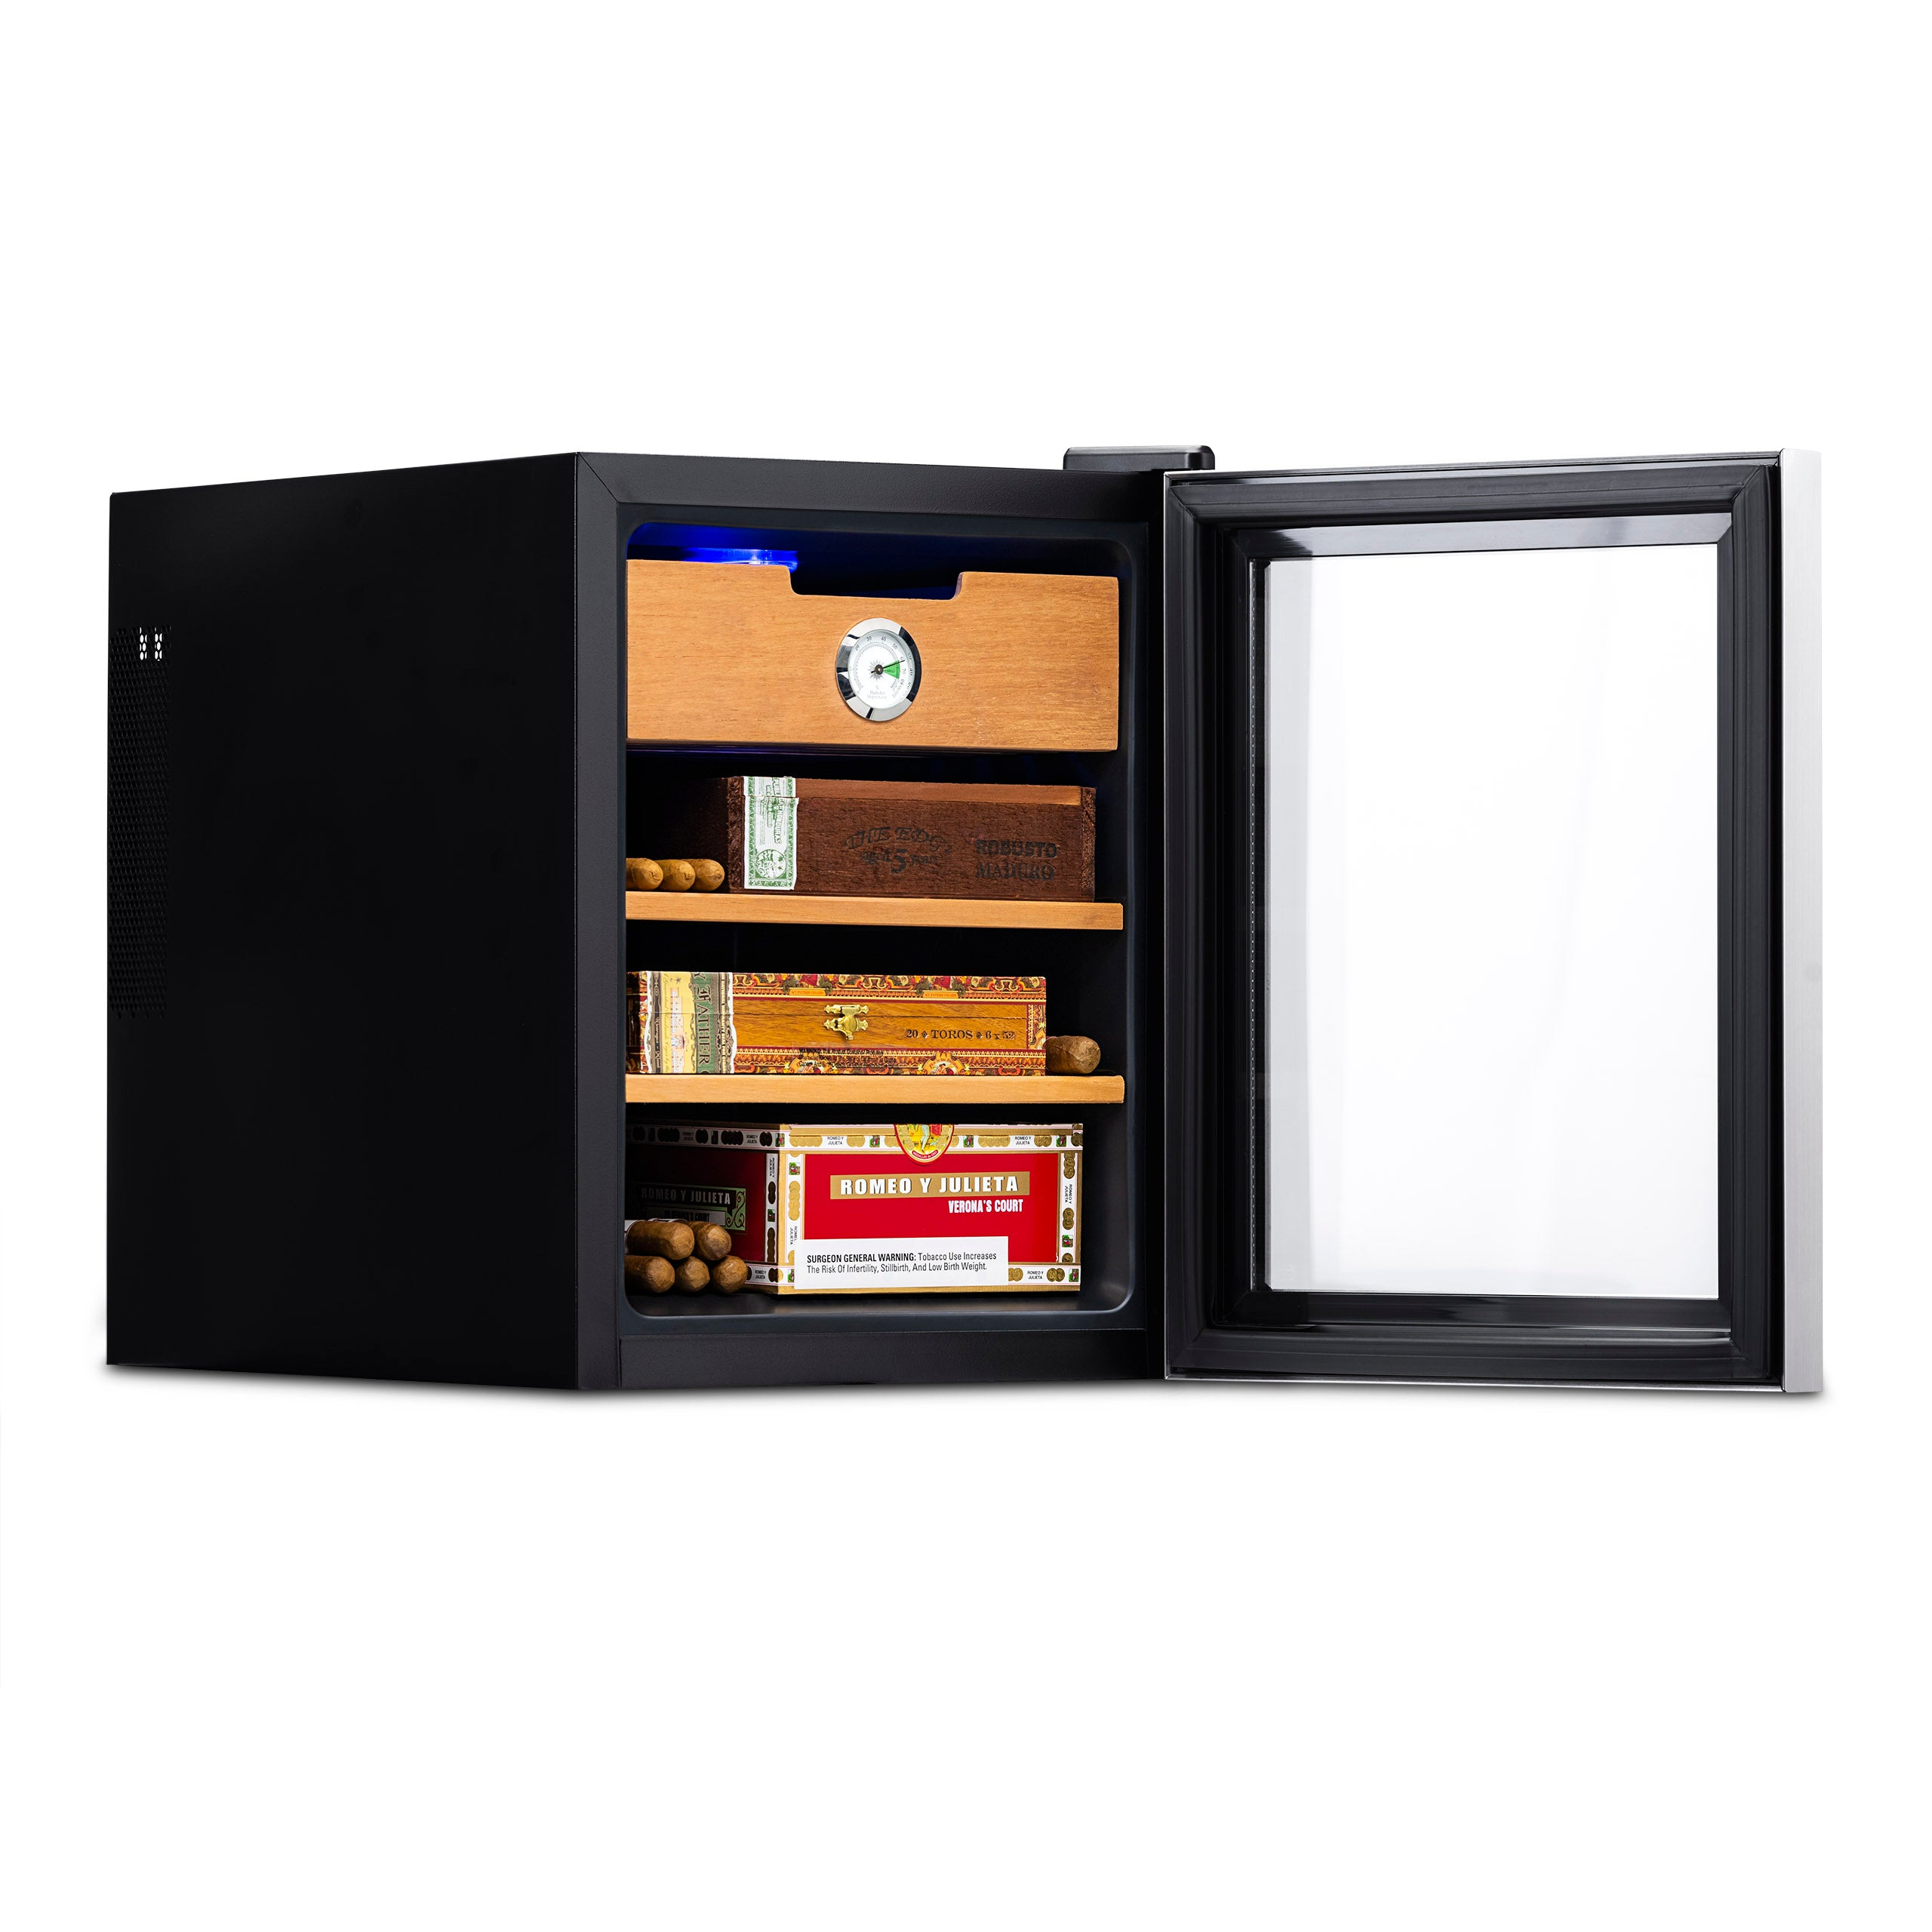 Newair Climate Controlled Electronic Humidor 250 Count Cigar Cooler